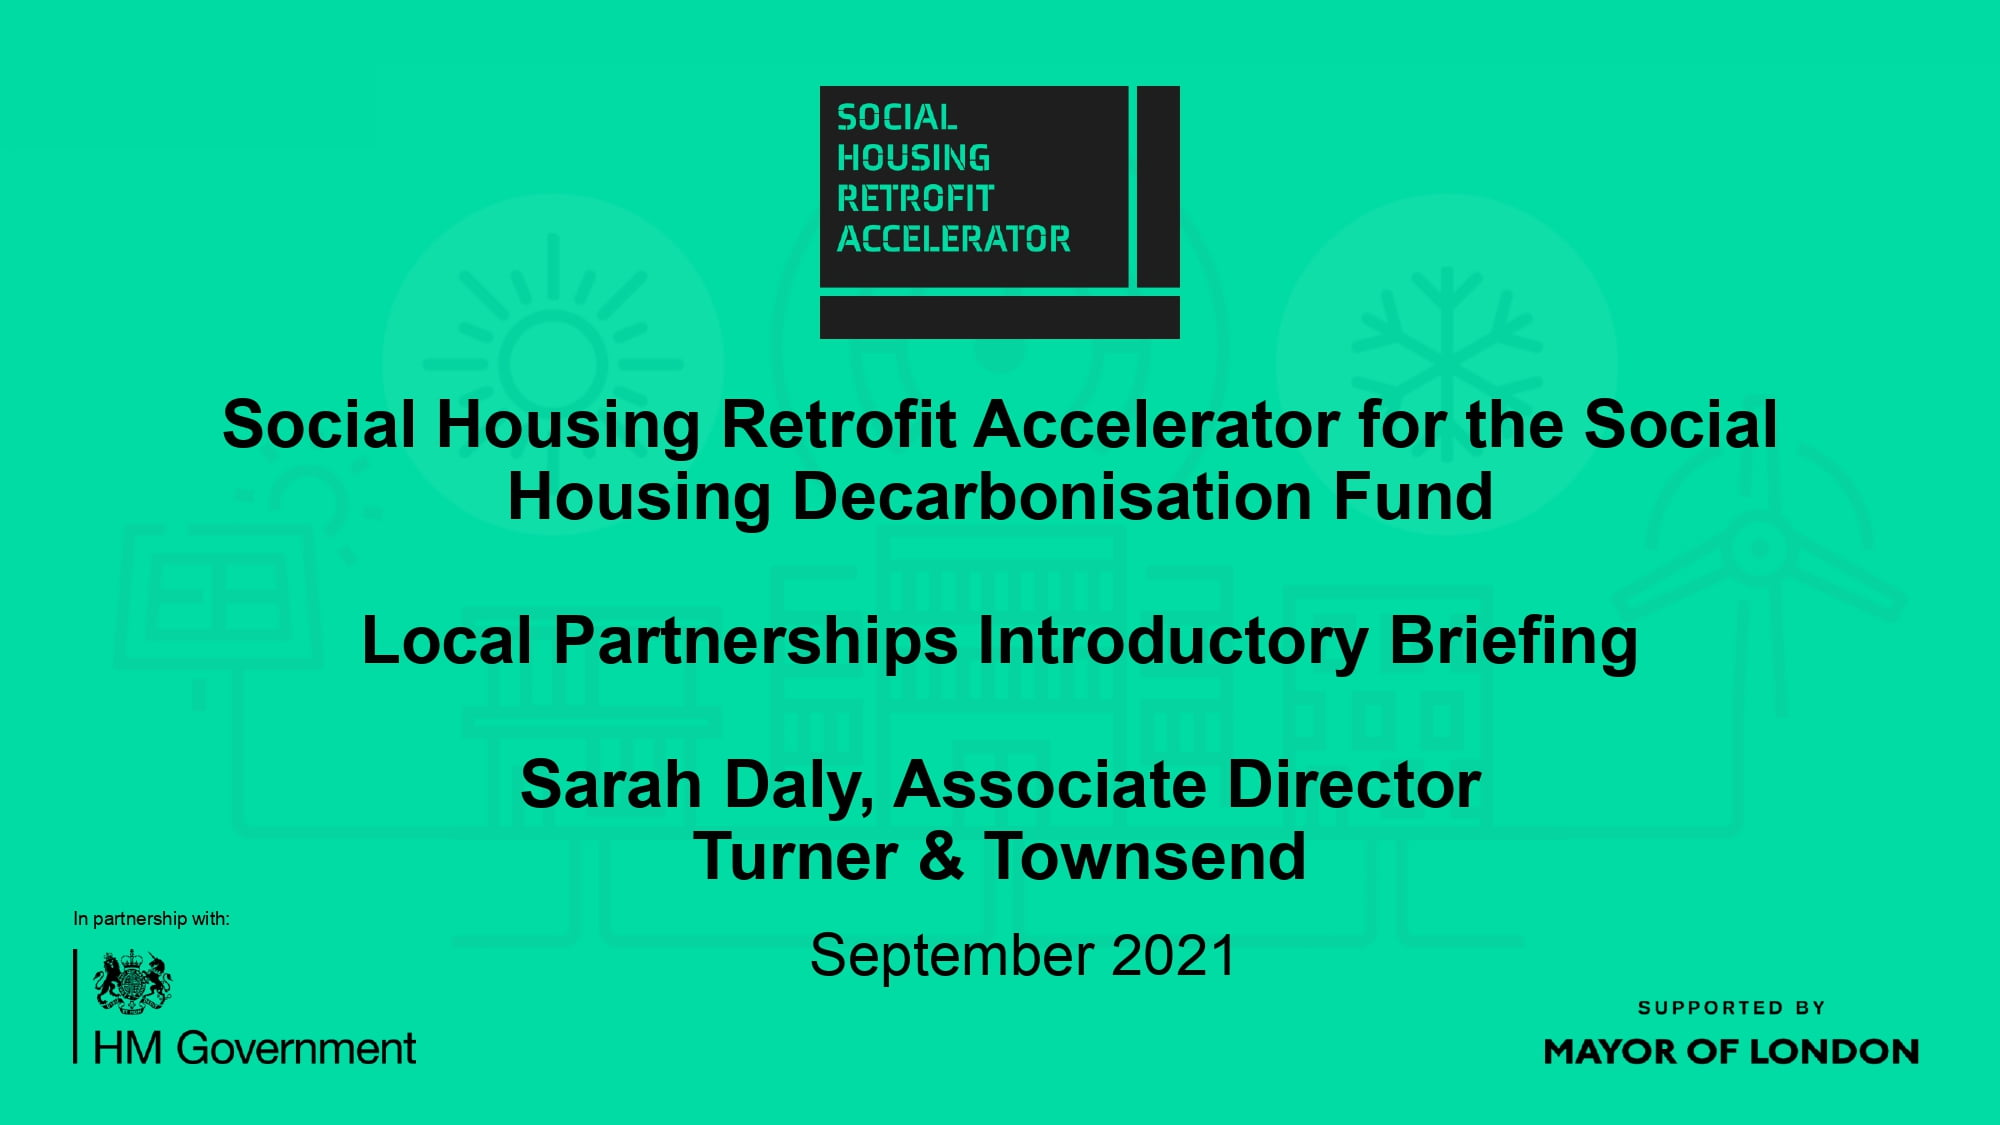 WEBINAR: Social Housing Decarbonisation Fund with Turner & Townsend